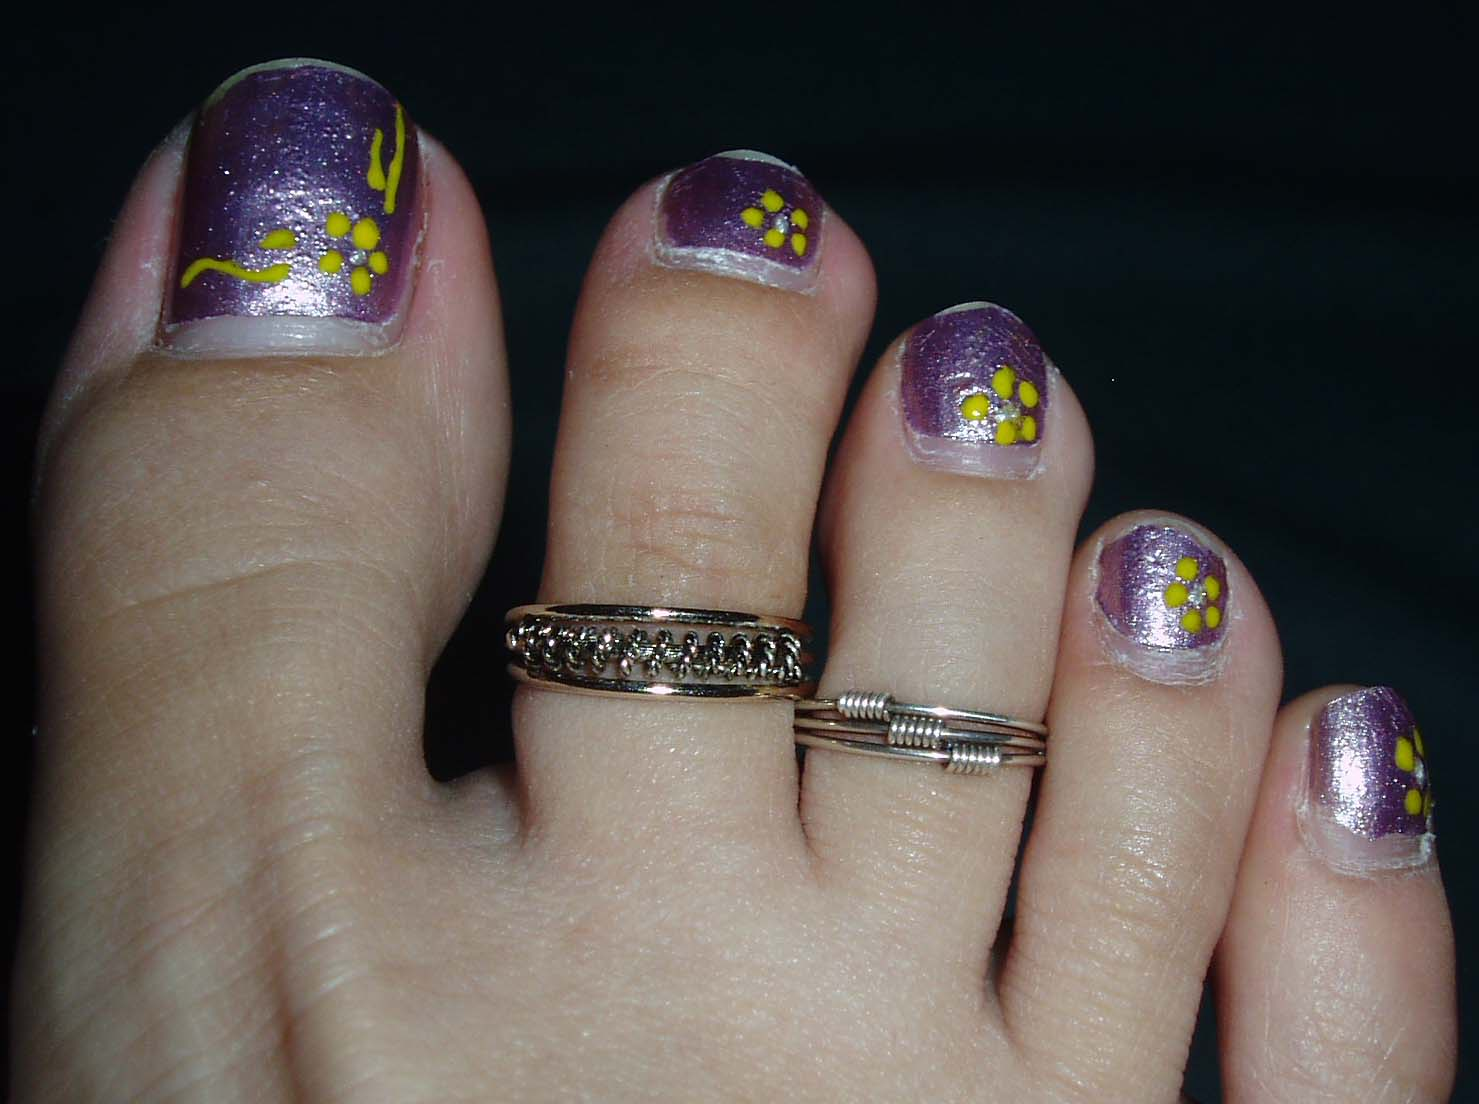 Well known Purple Nail Polish and Toe Ring Style | Girls Fashion Magazine ES23